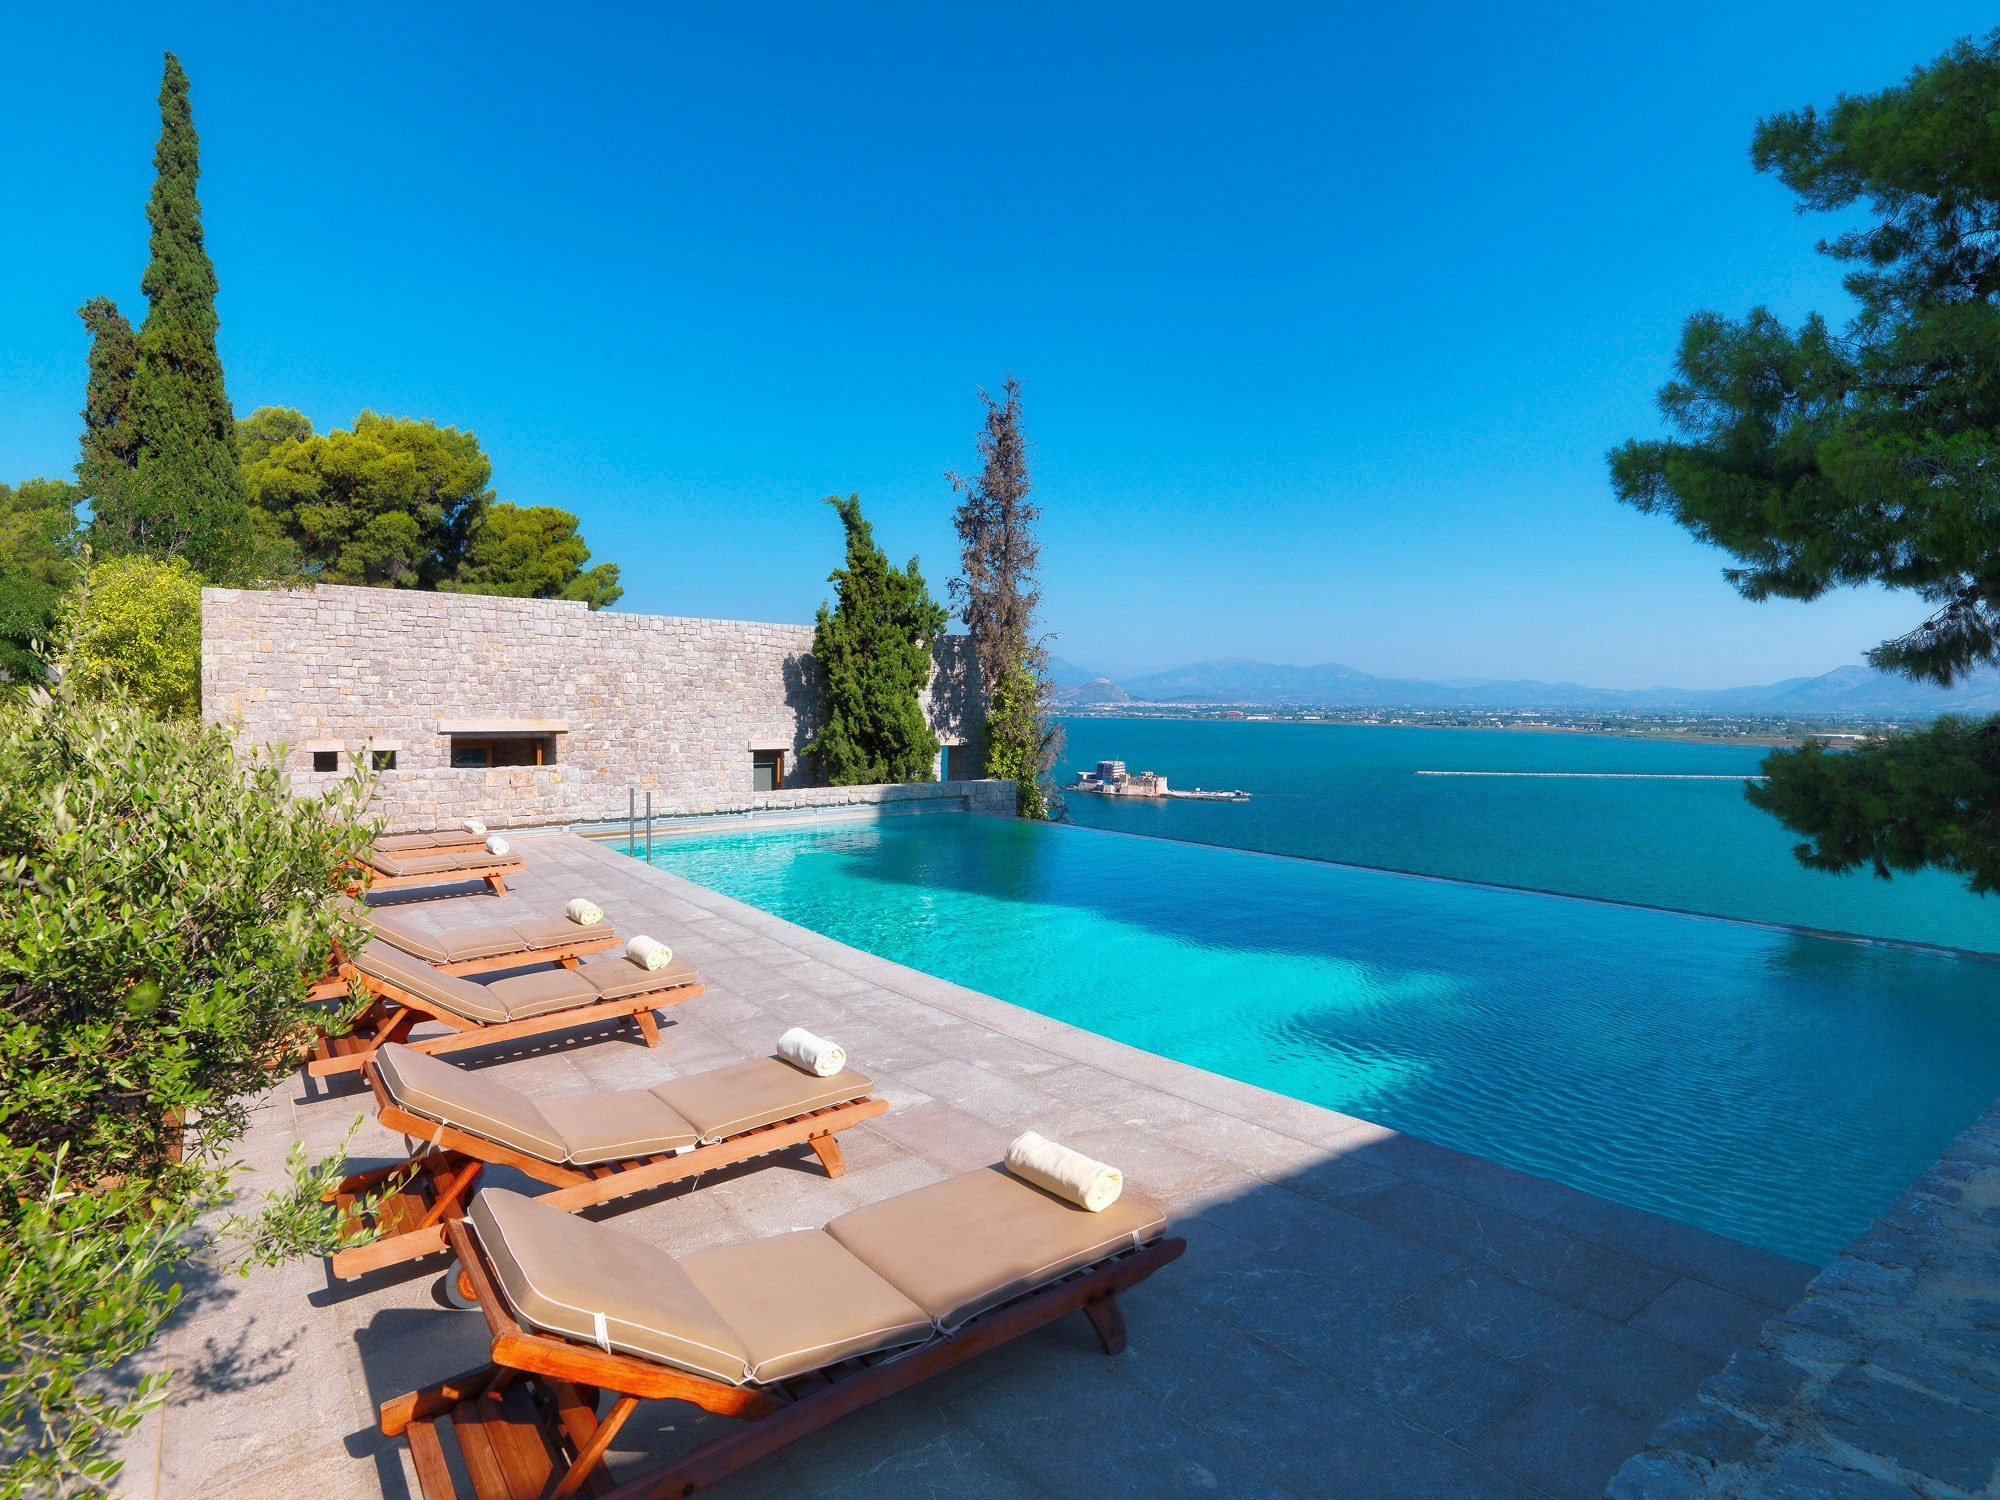 Nafplia Palace Hotel Villas Nafplio Greece Infinity Pools